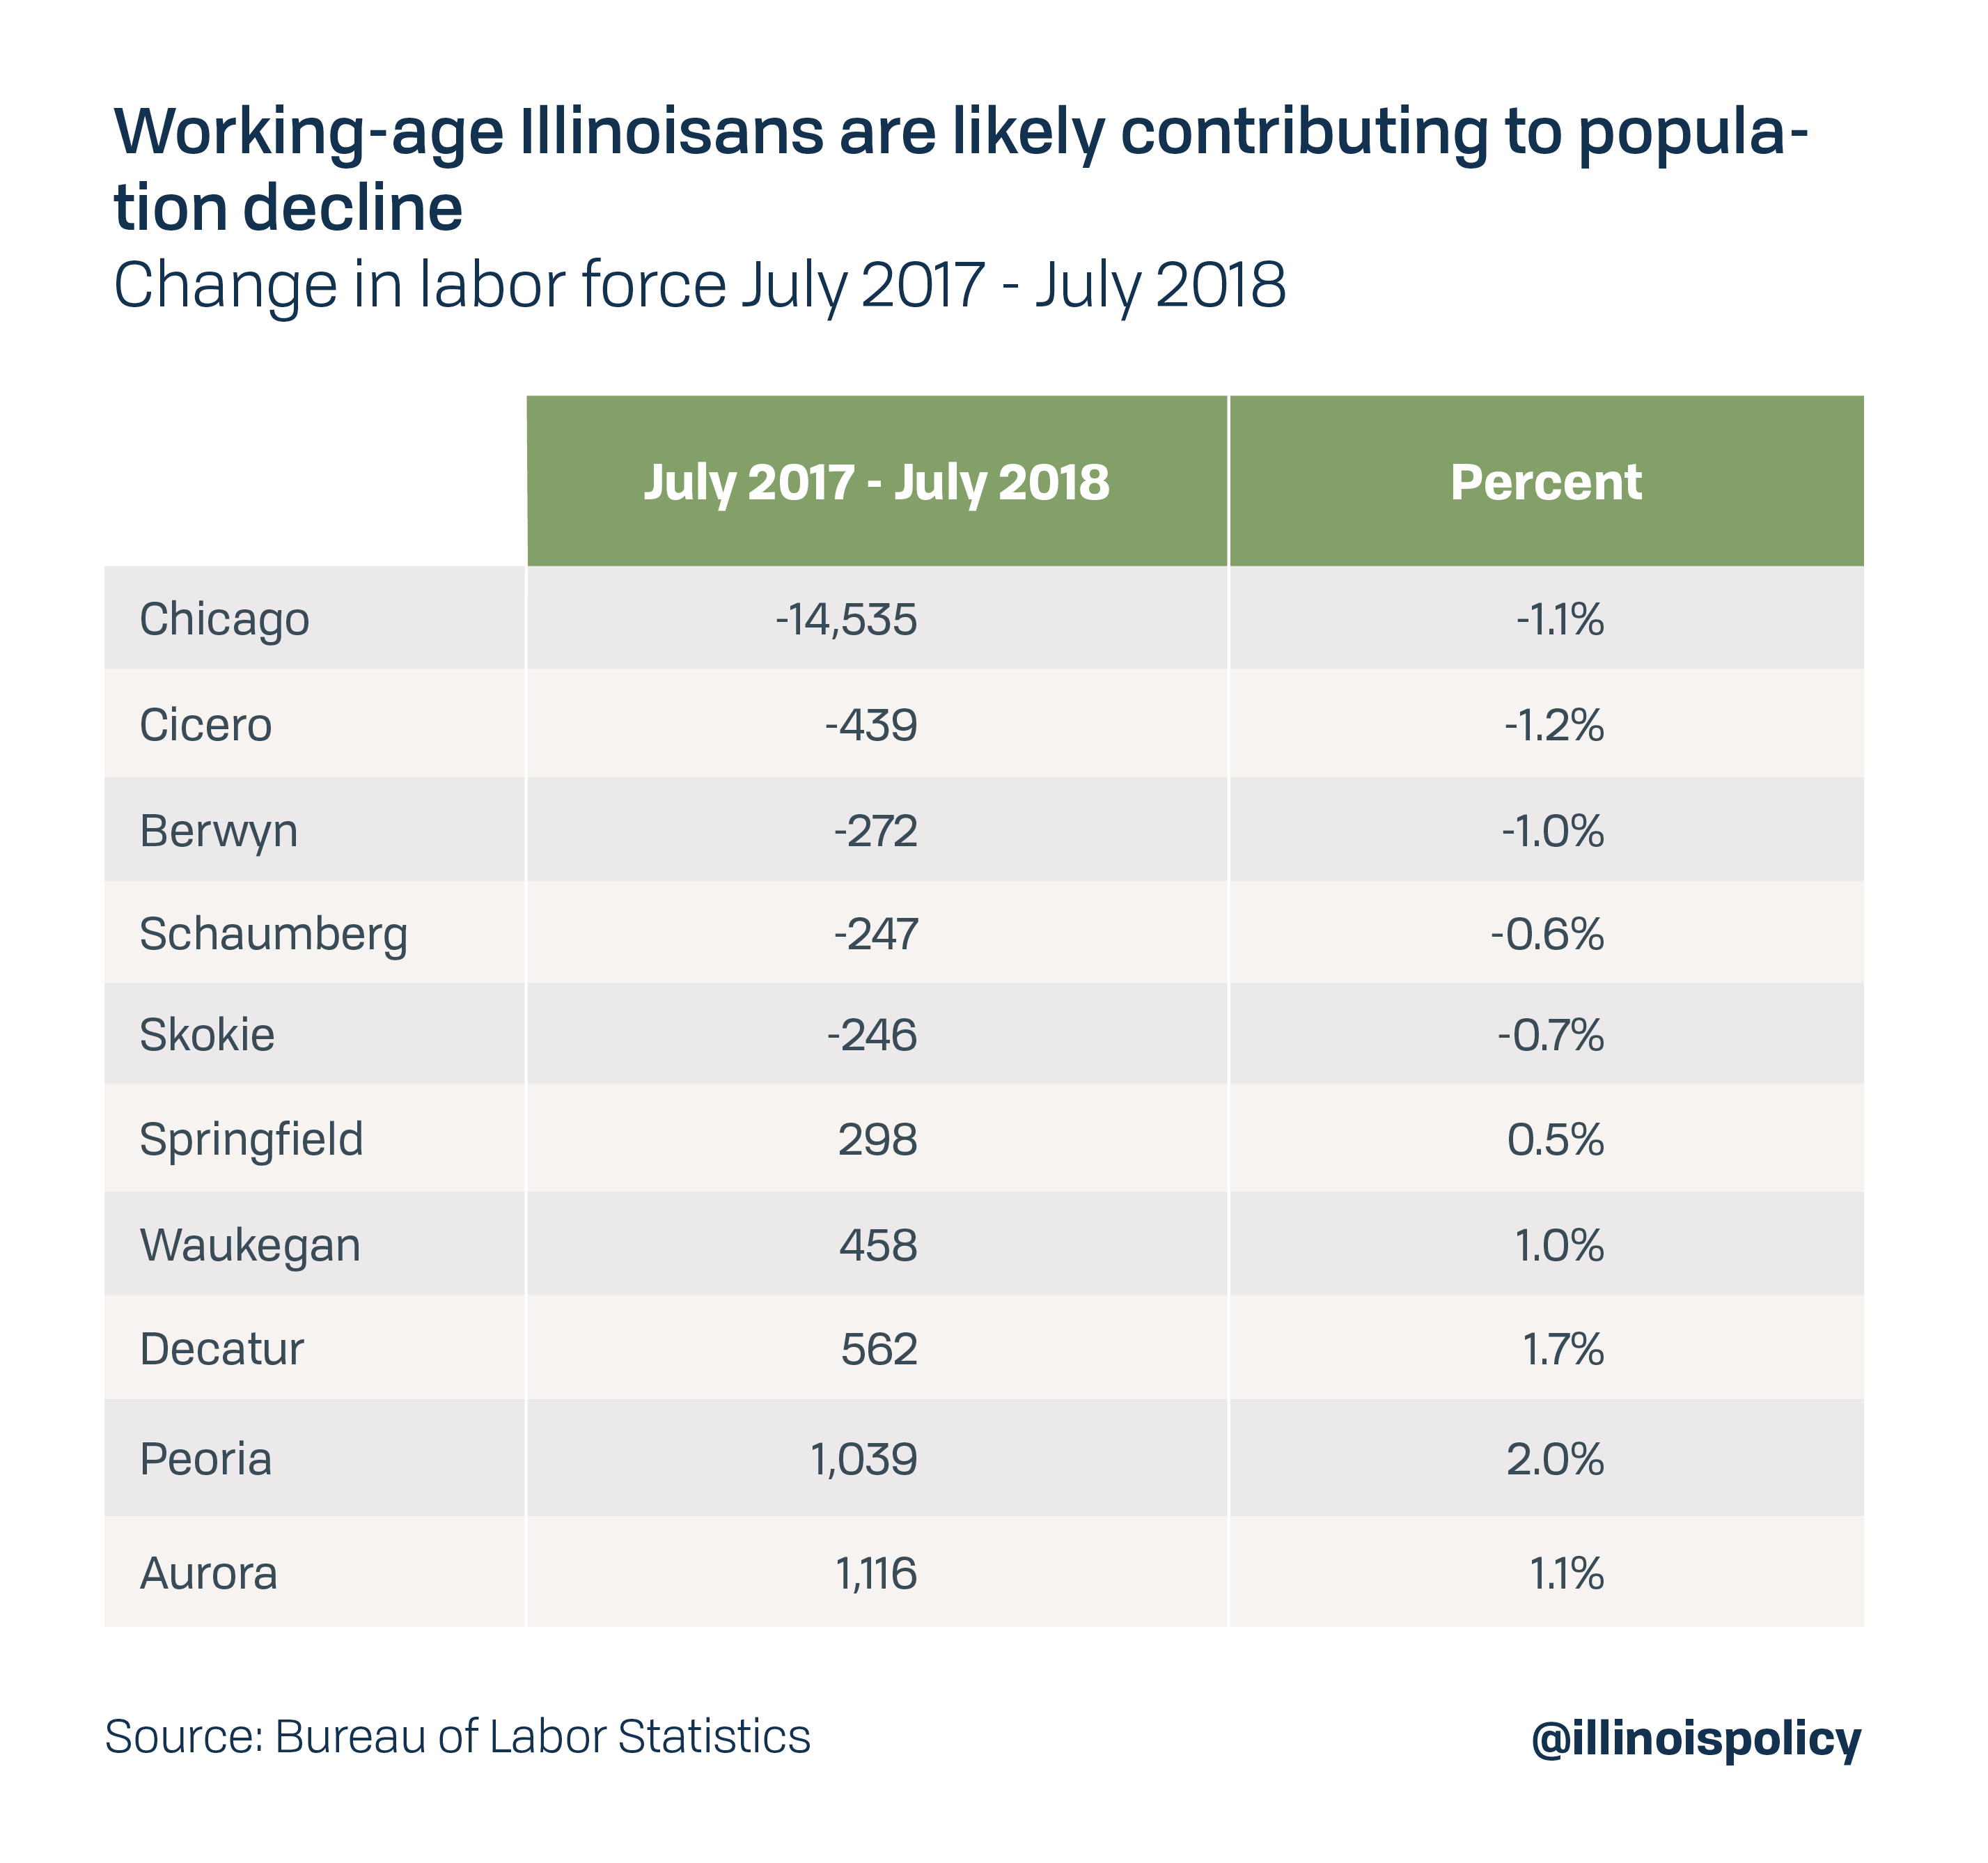 Working-age Illinoisans are likely contributing to population decline